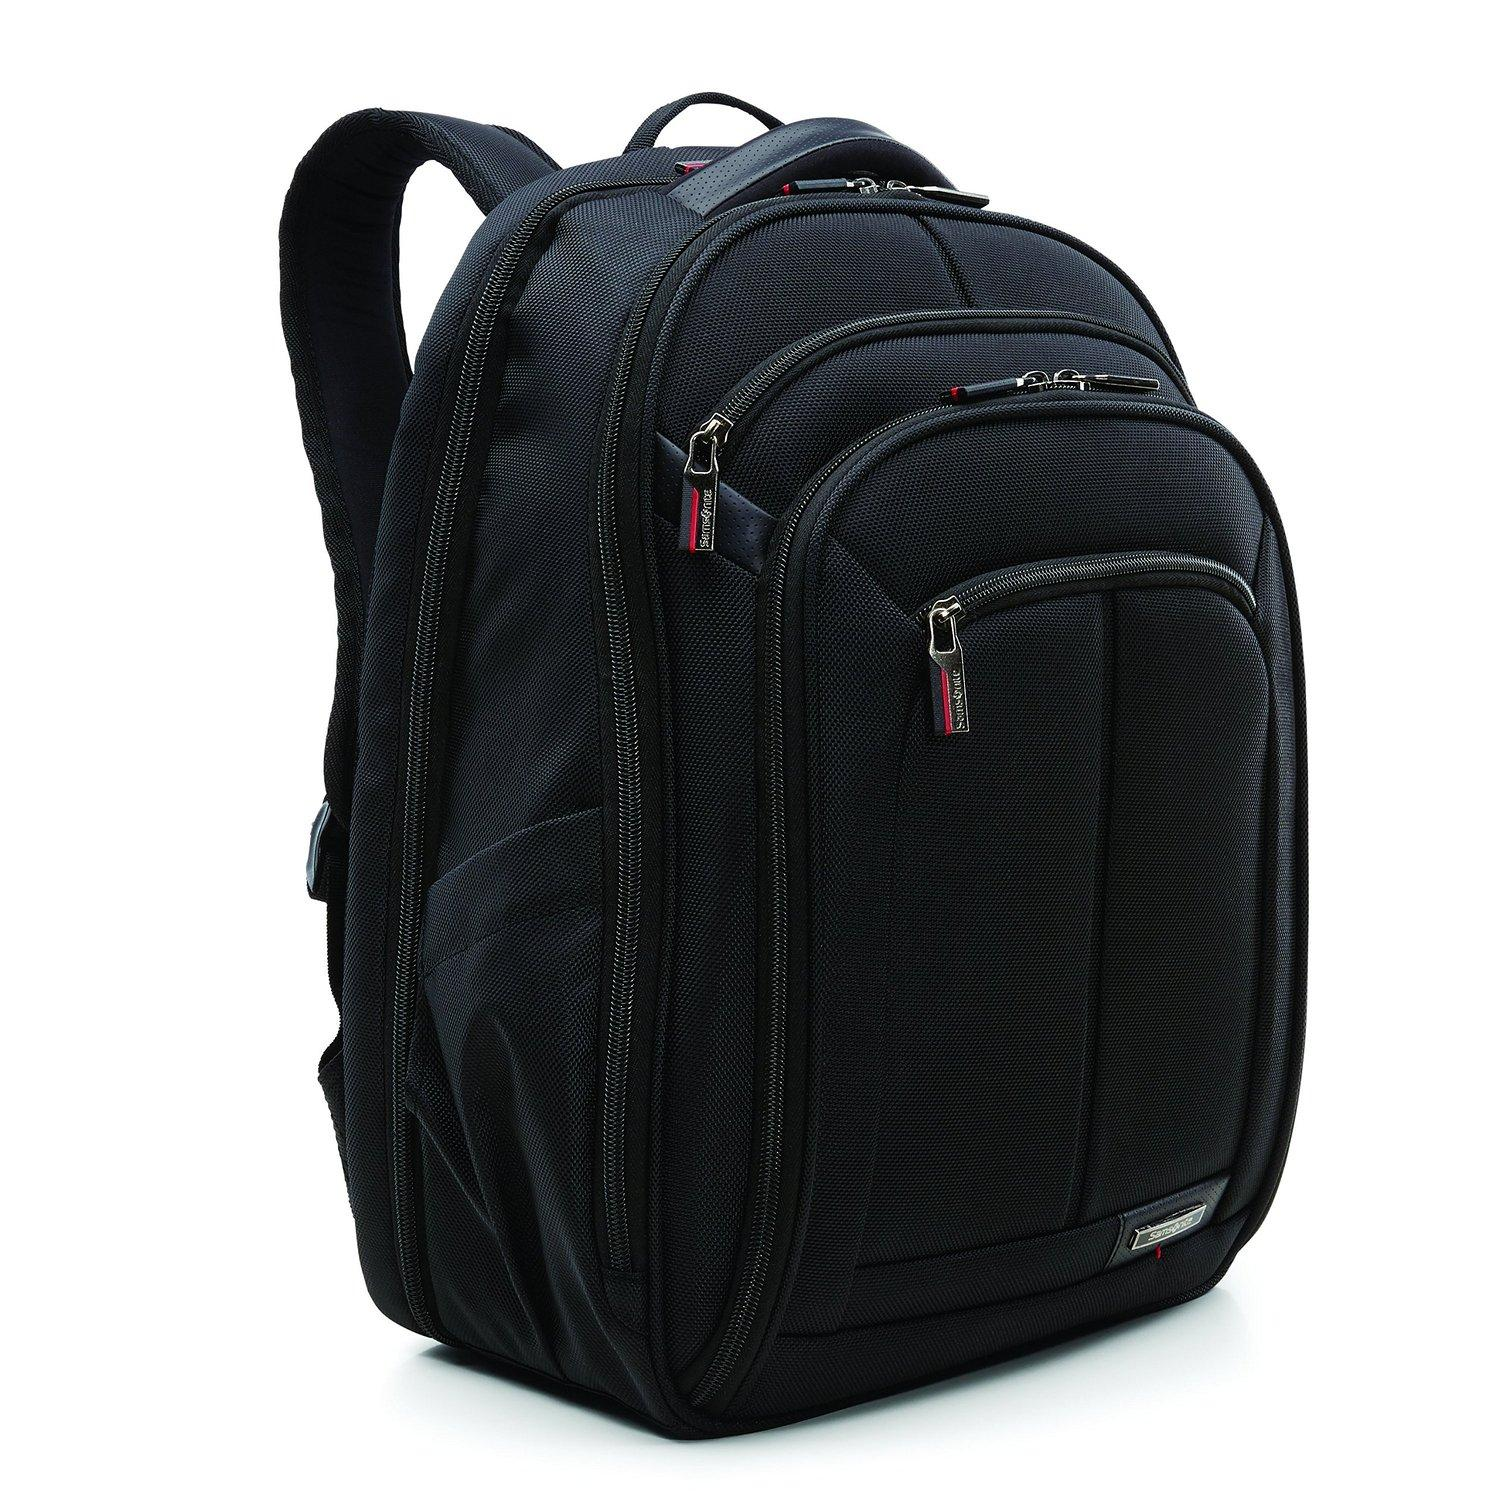 Samsonite Syndicate Checkpoint Friendly Laptop Backpack